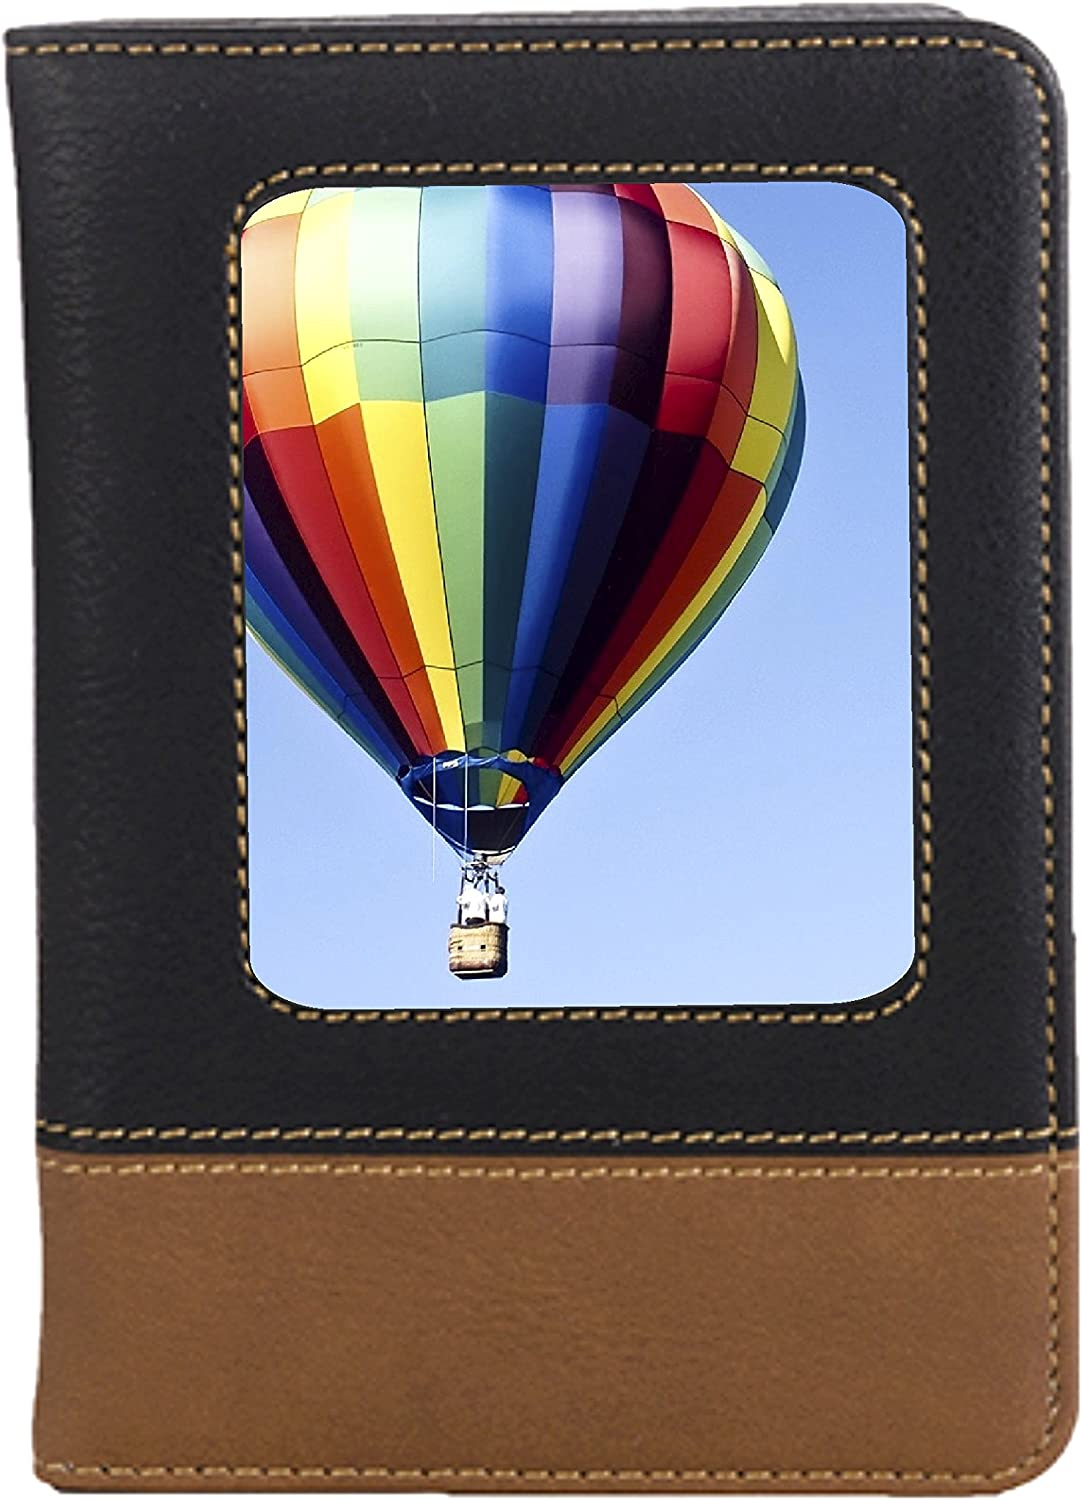 Hot Air Balloon Leatherette Passport Wallet Style Case Cover For Travel